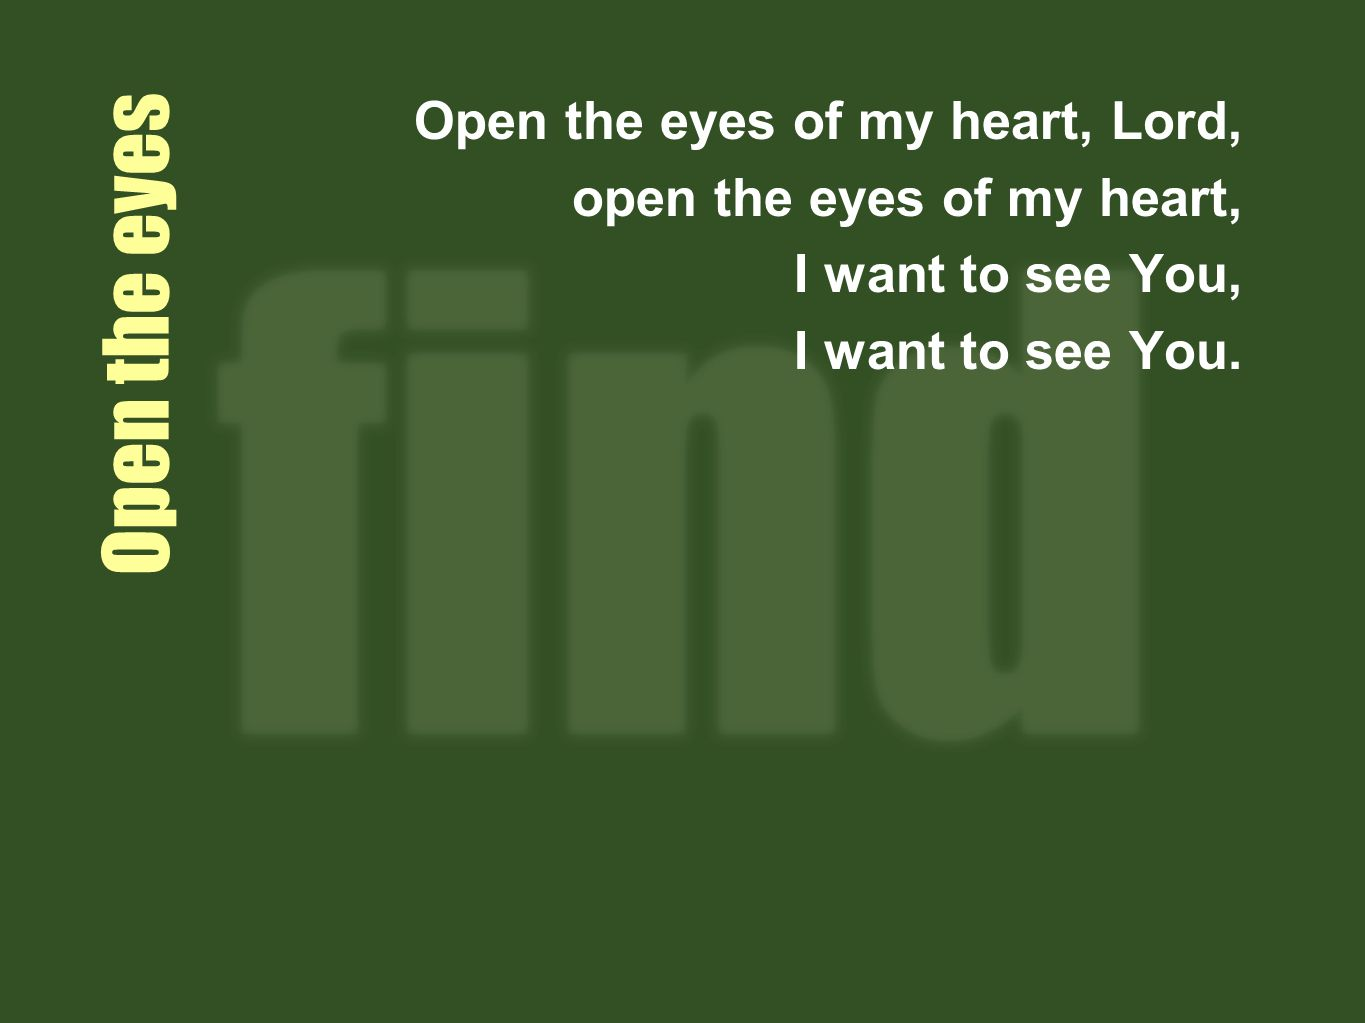 Open the eyes Open the eyes of my heart, Lord,